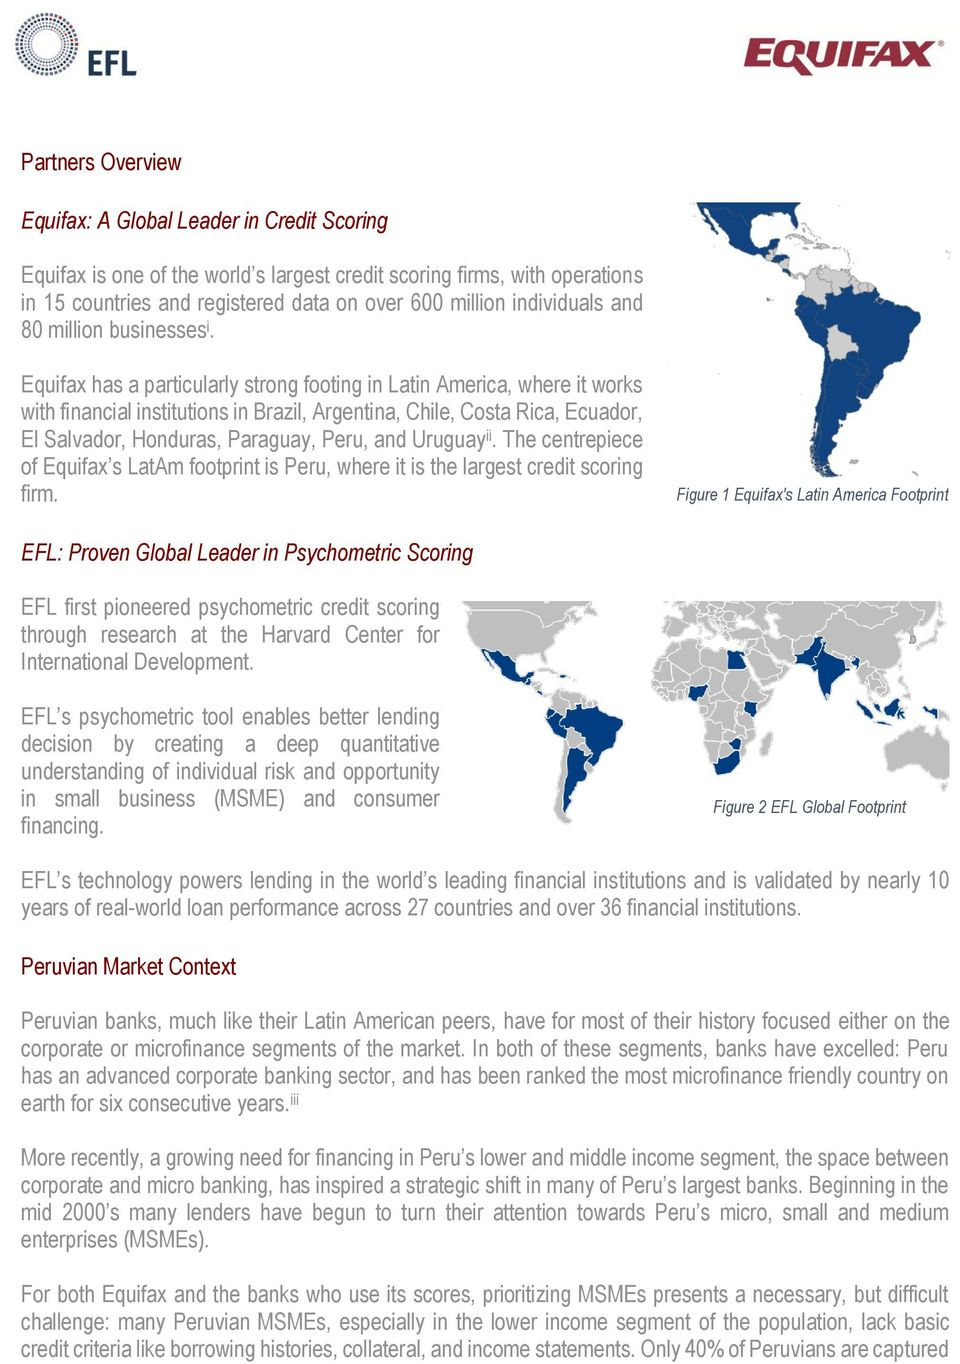 Equifax has a particularly strong footing in Latin America, where it works with financial institutions in Brazil, Argentina, Chile, Costa Rica, Ecuador, El Salvador, Honduras, Paraguay, Peru, and